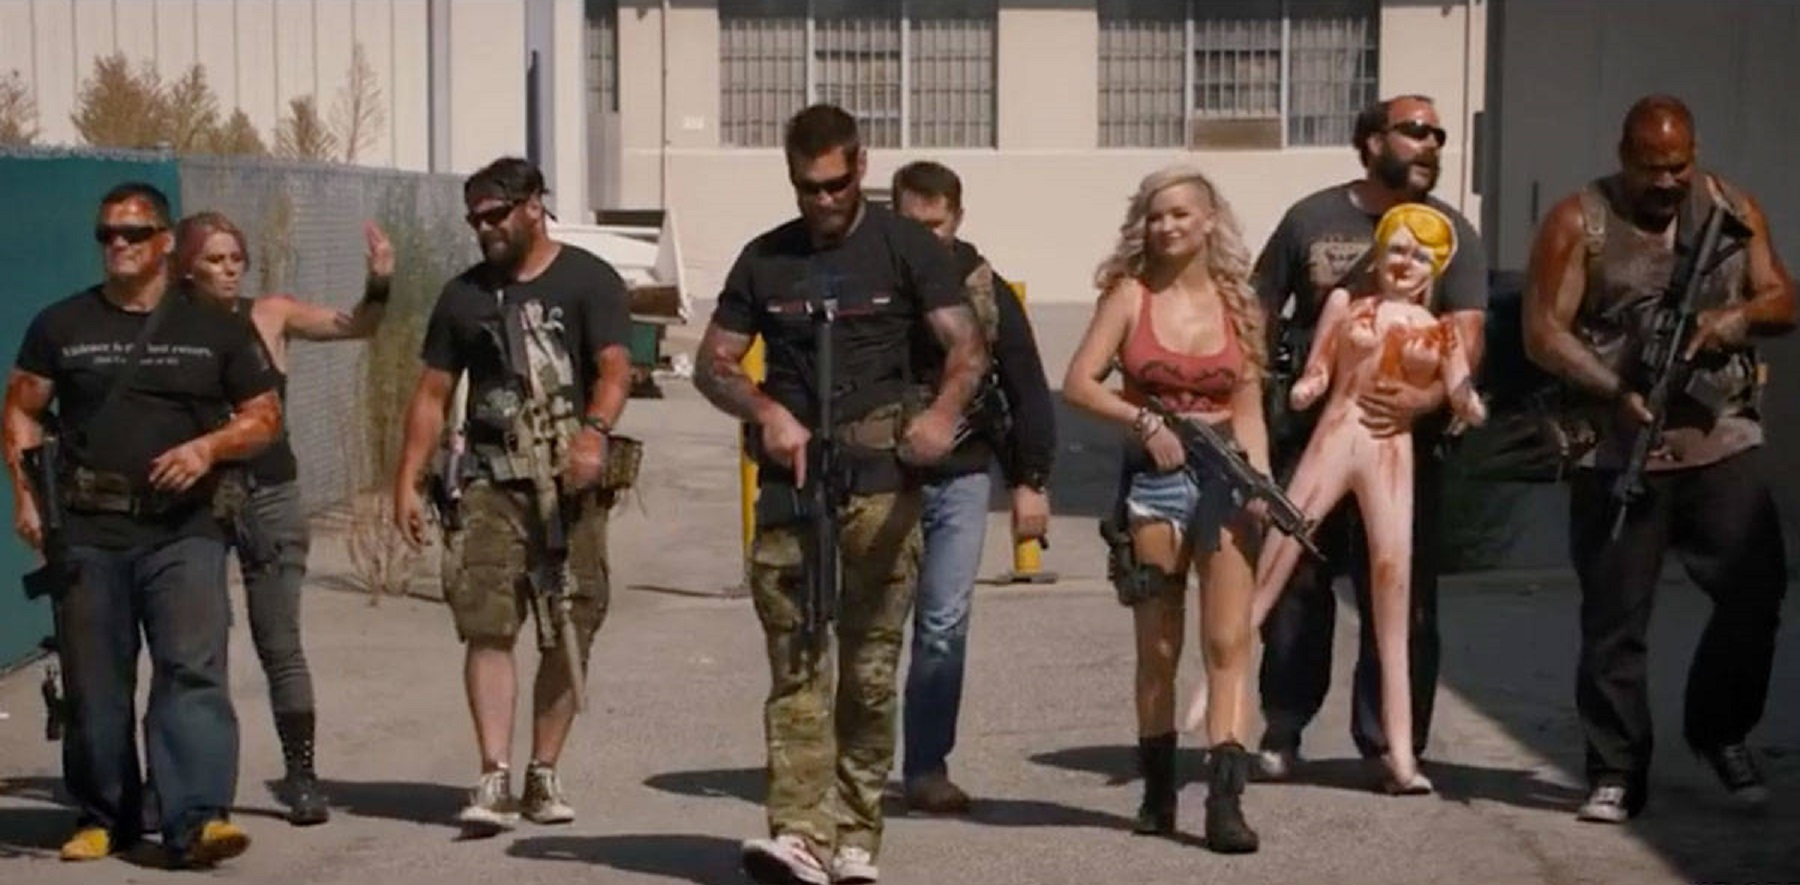 The team head into action in Range 15 (2016)